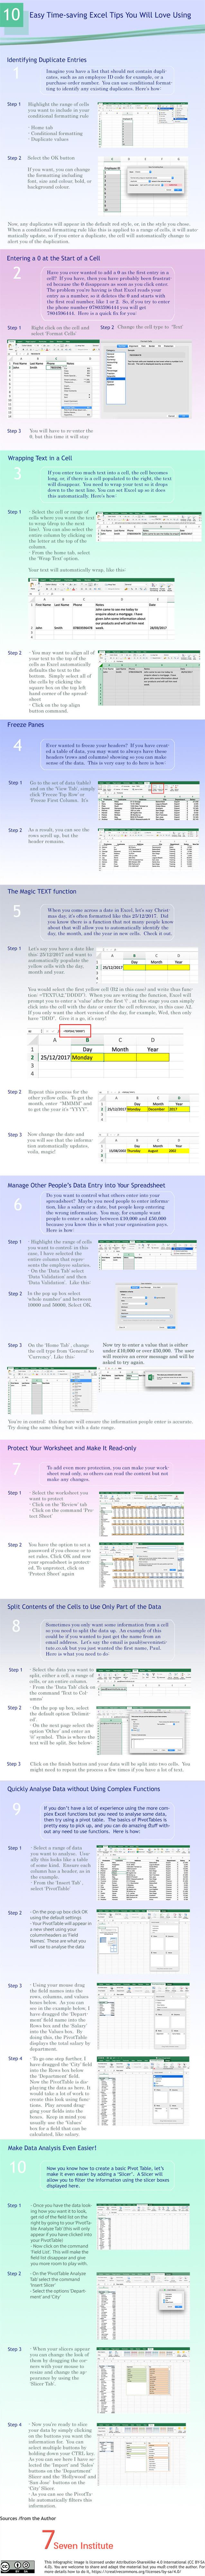 Tricks Using Excel and More Time-Saving Tips [Infographic]